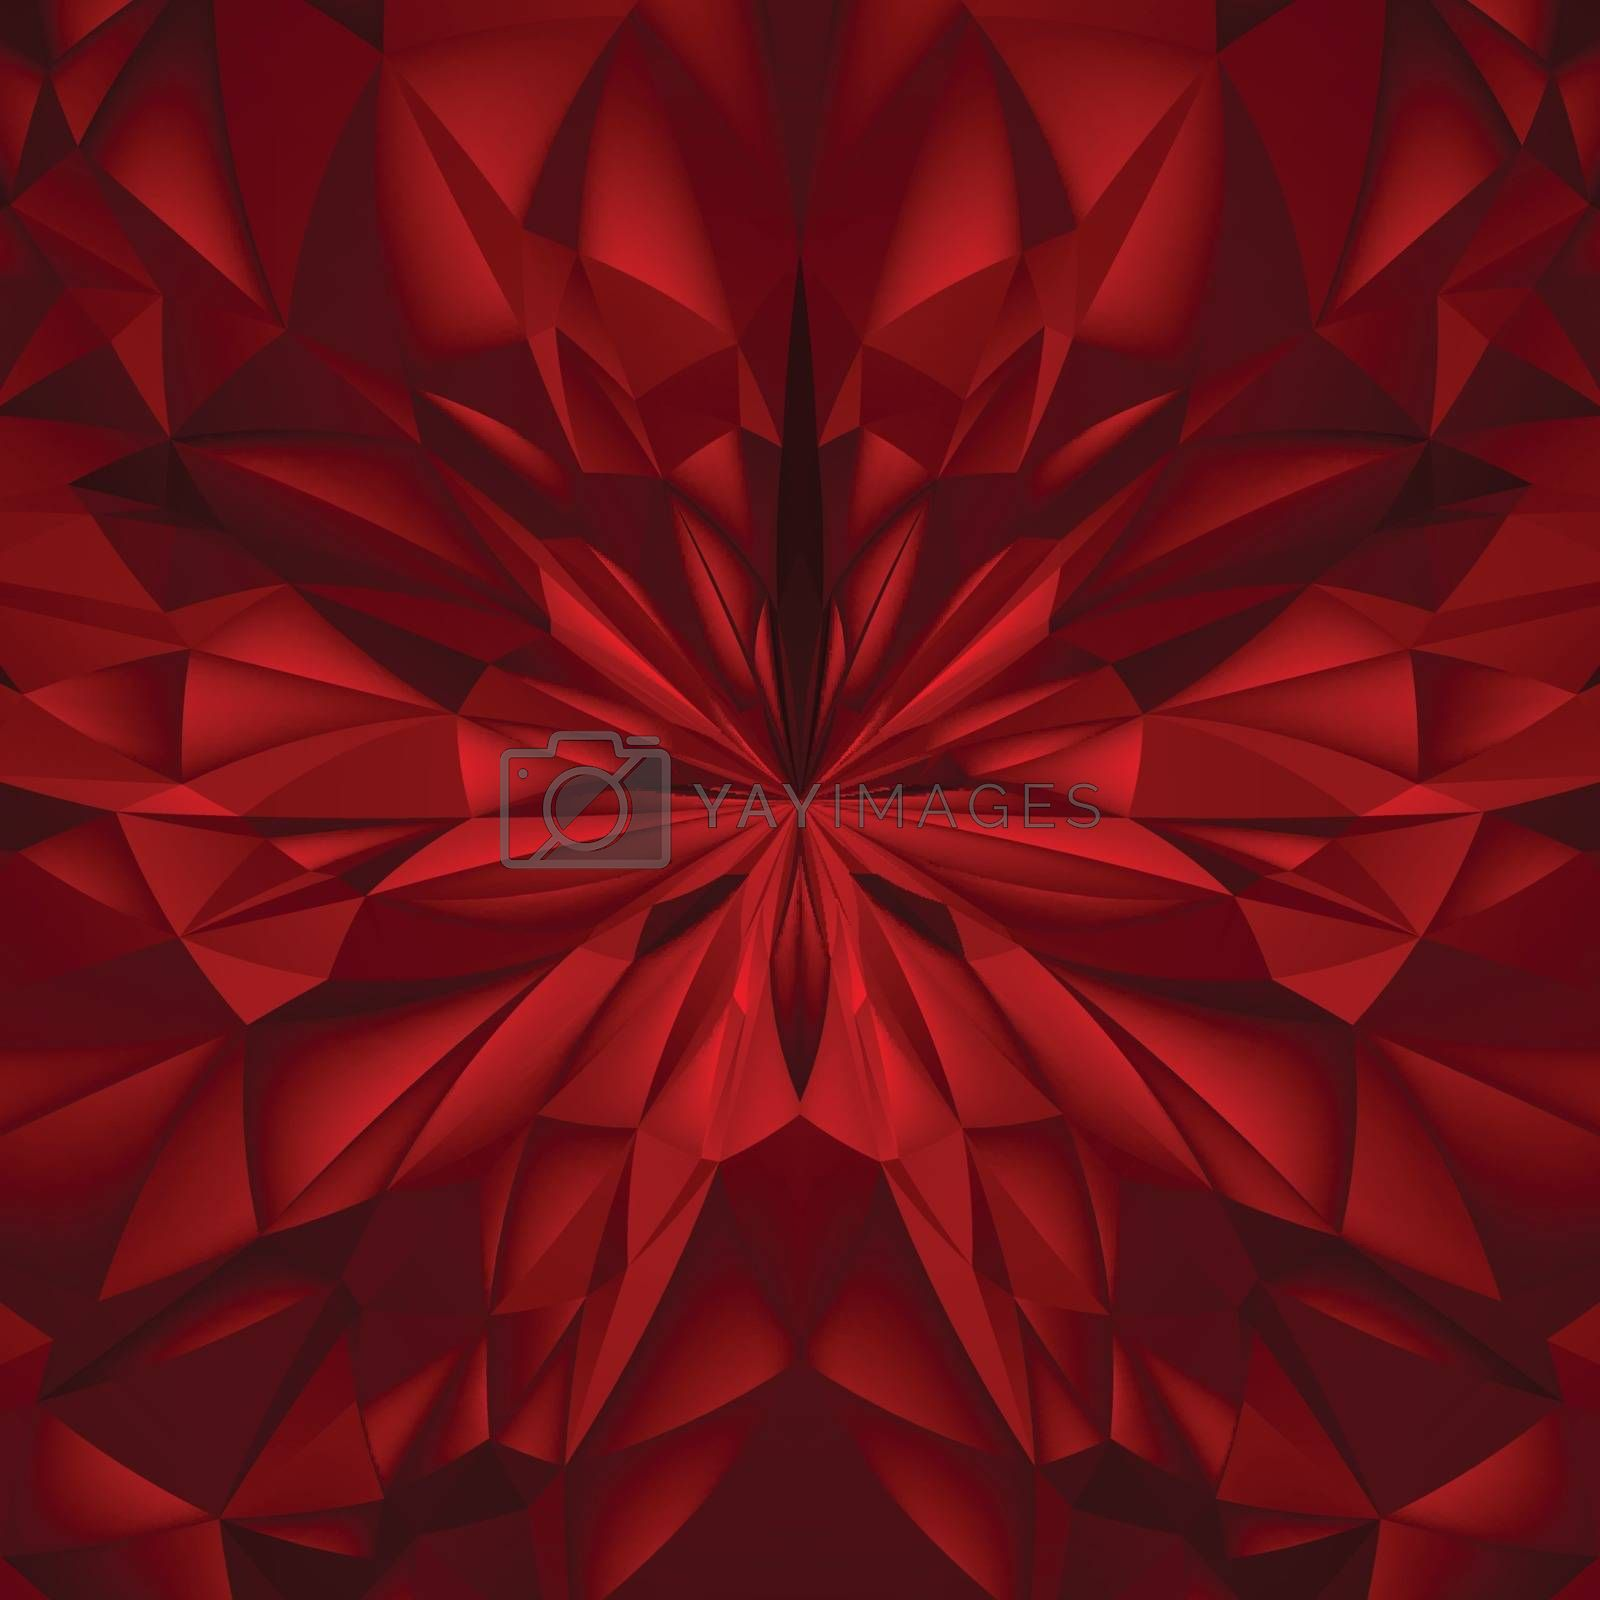 Abstract Red Composition. Magic Explosion Star with Particles